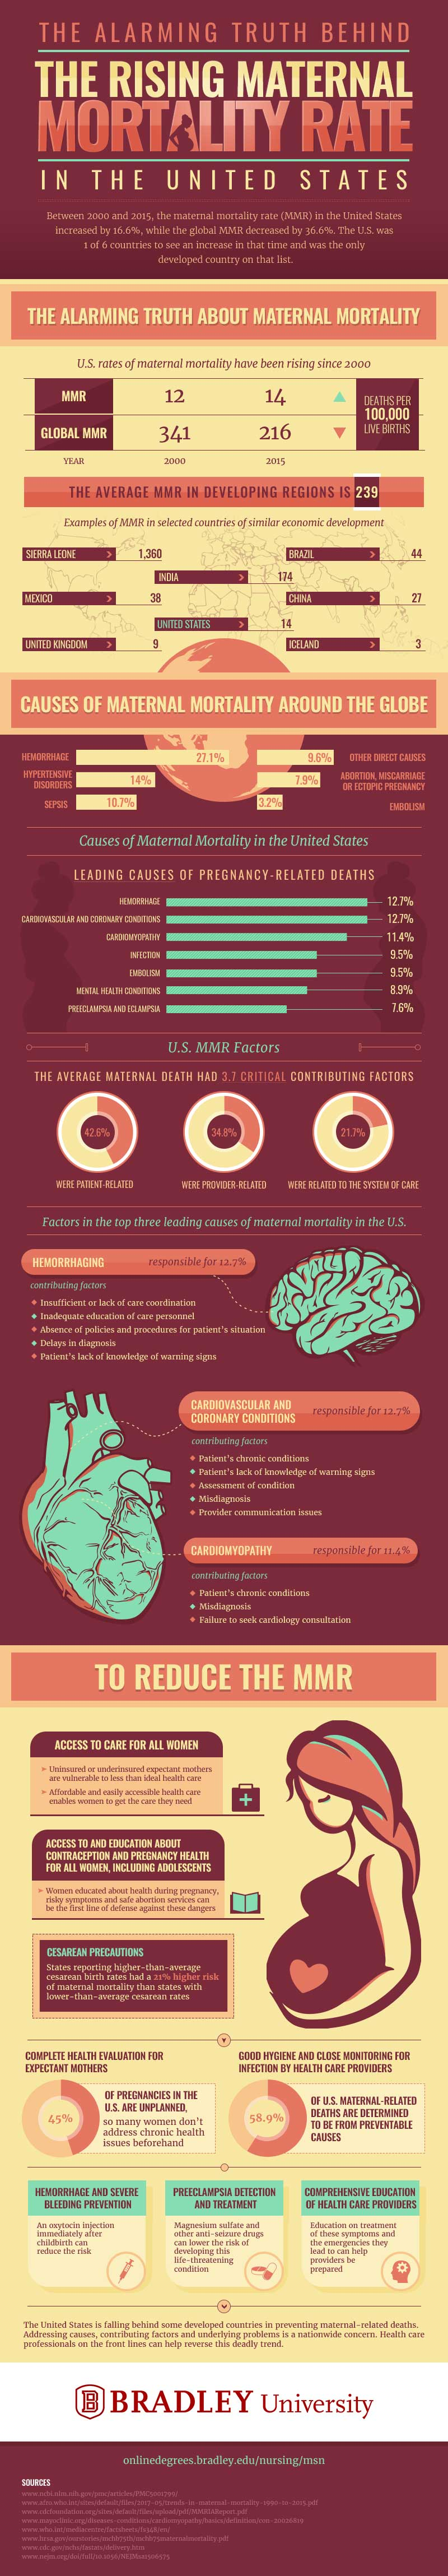 Infographic on the truth behind the rising maternal mortality rate in the United States